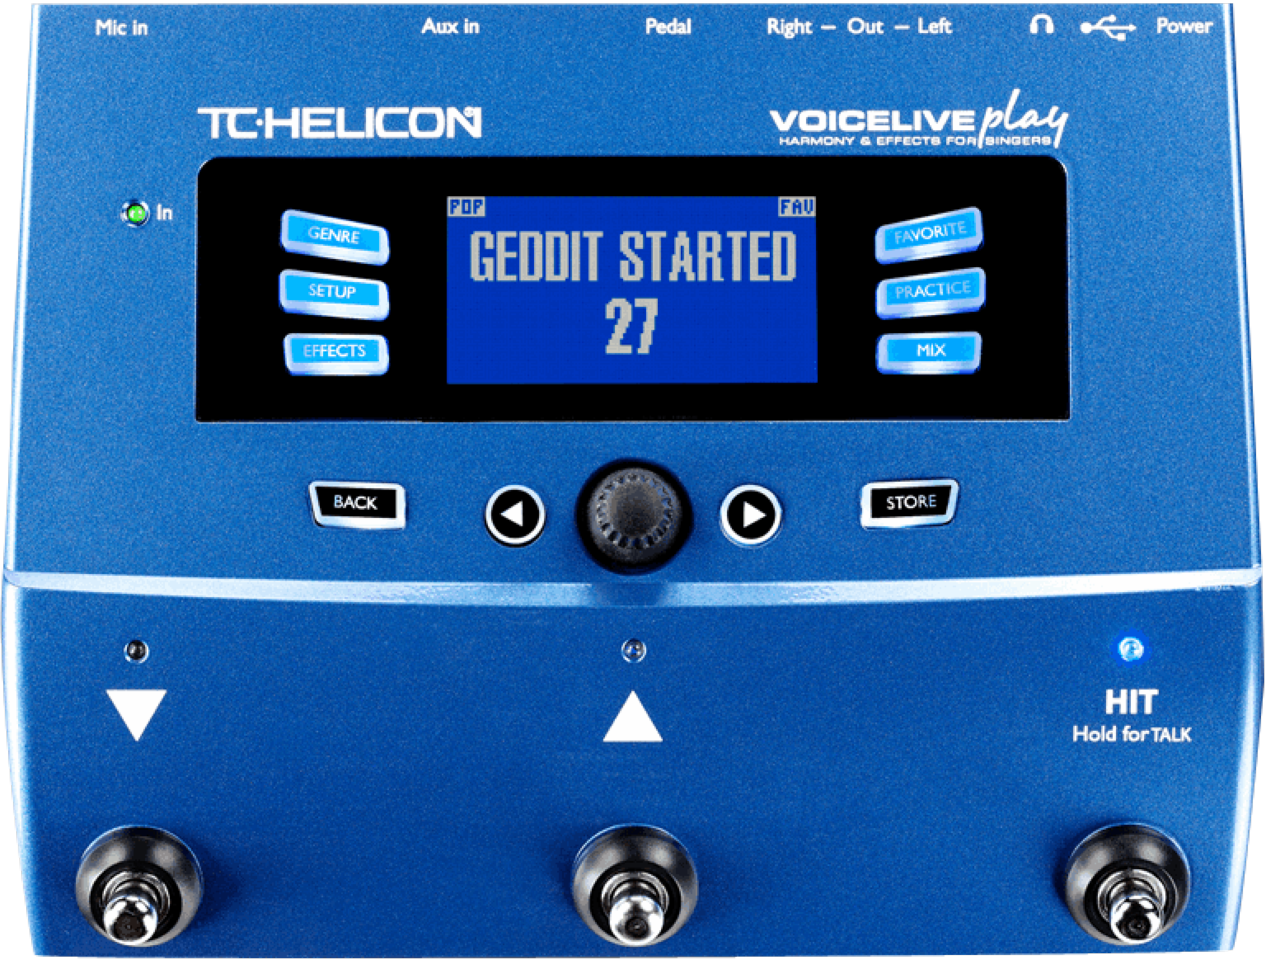 TC Helicon VOICELIVE PLAY Vocal FX Processor